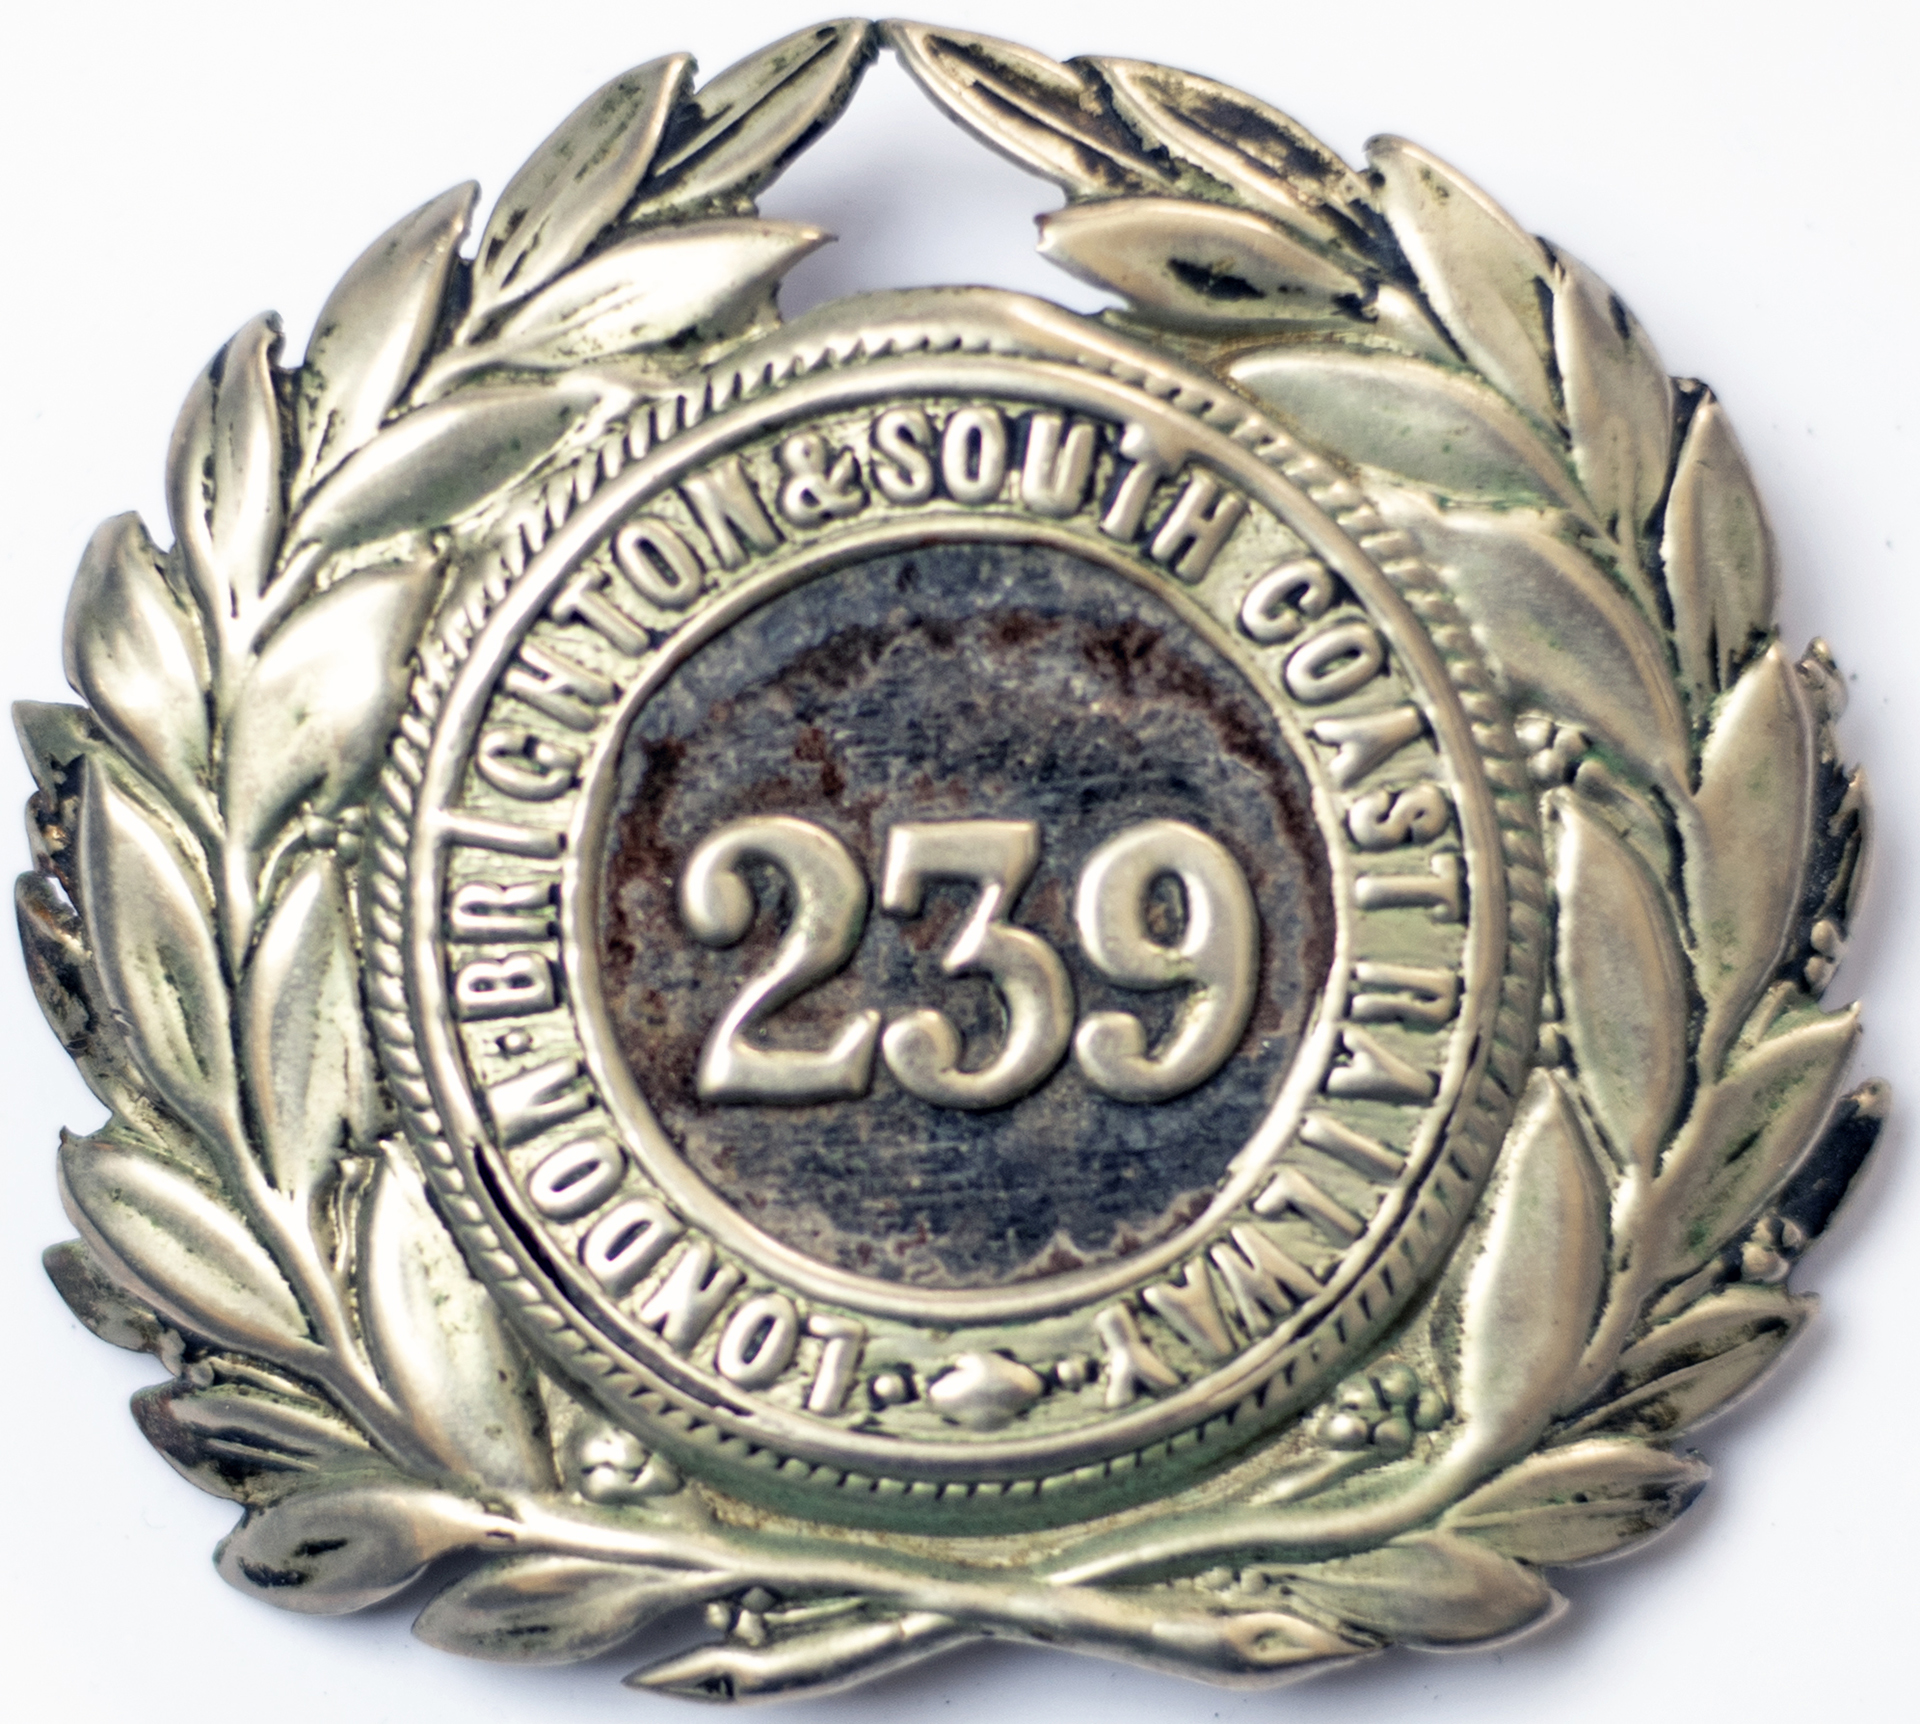 London Brighton & South Coast Railway Guards Cap Badge number 239. In very good condition